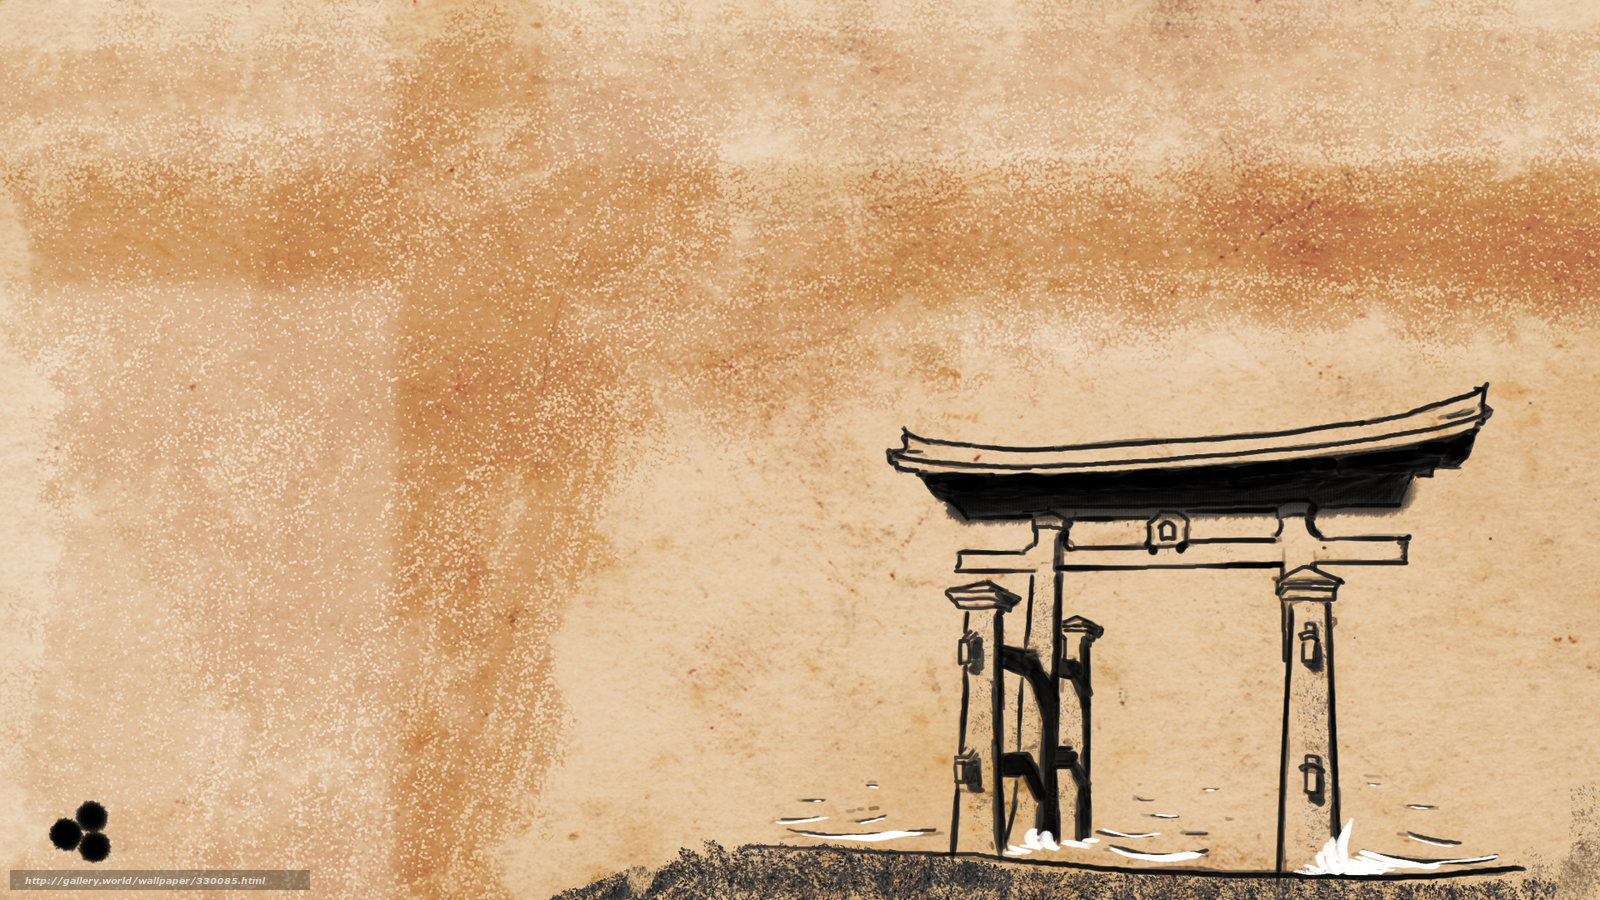 Download wallpaper trajectory Shintoism Japan Japanese style 1600x900